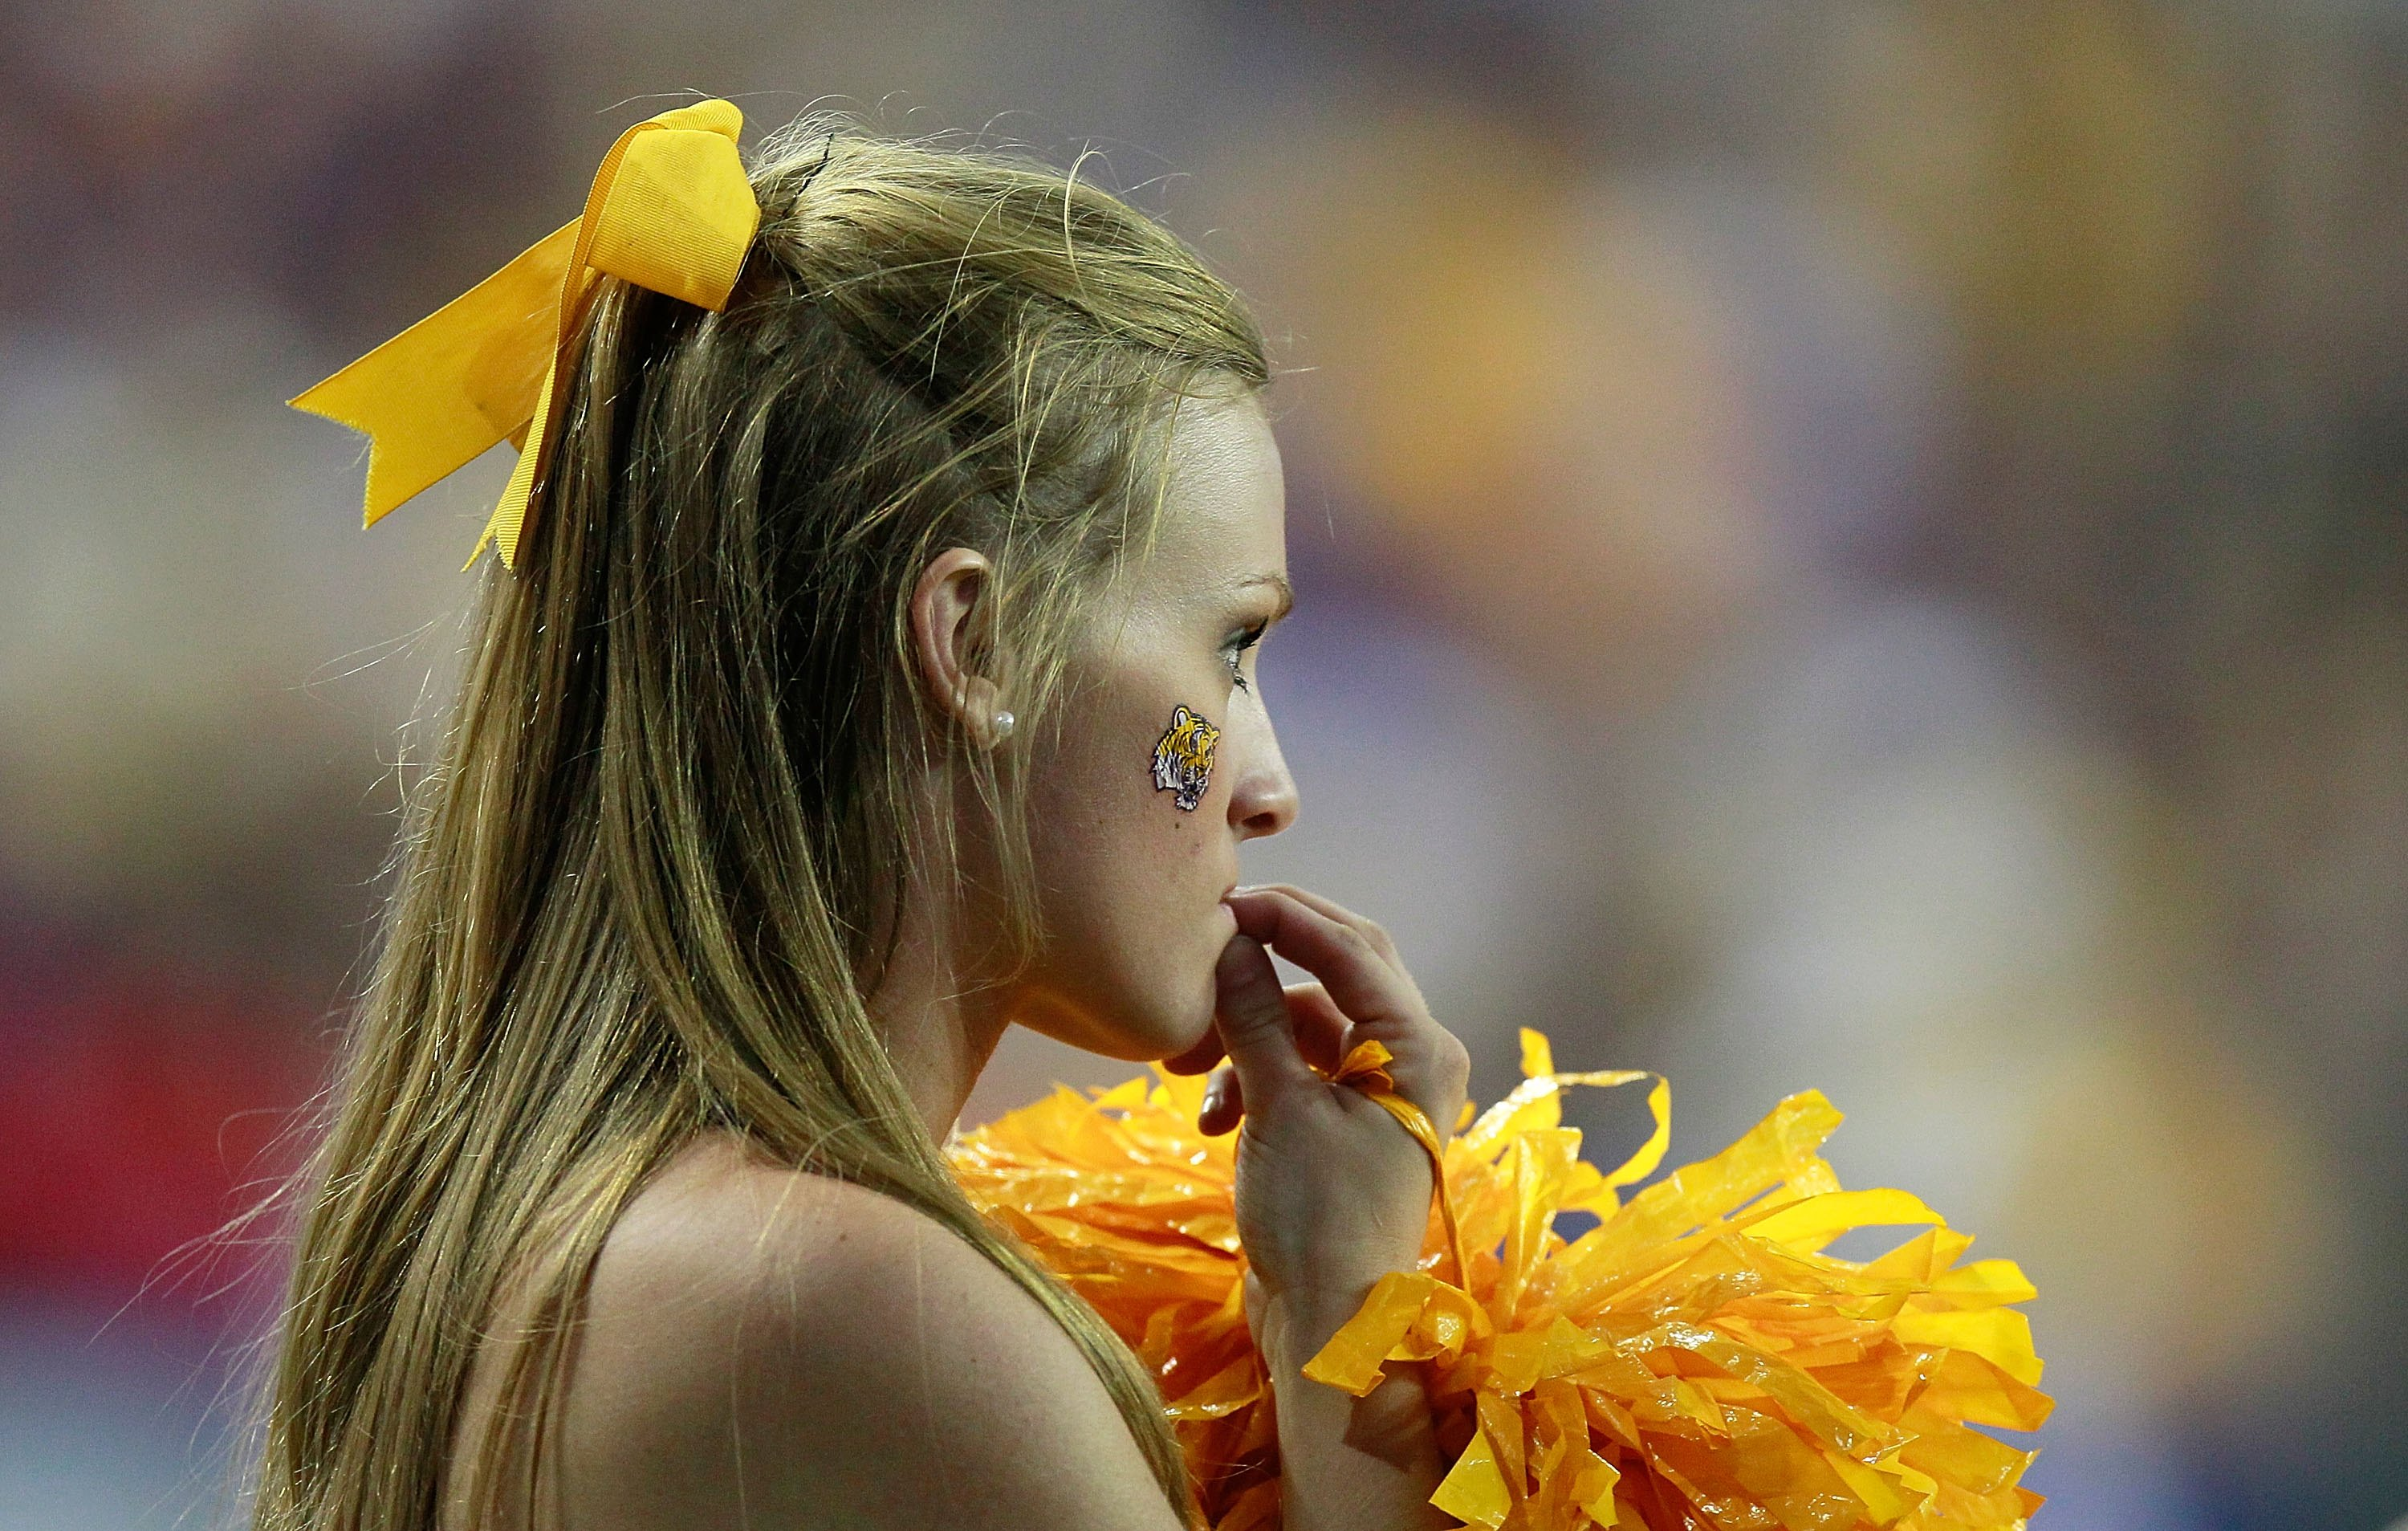 ATLANTA - SEPTEMBER 04:  A cheerleader for the LSU Tigers against the North Carolina Tar Heels during the Chick-fil-A Kickoff Game at Georgia Dome on September 4, 2010 in Atlanta, Georgia.  (Photo by Kevin C. Cox/Getty Images)